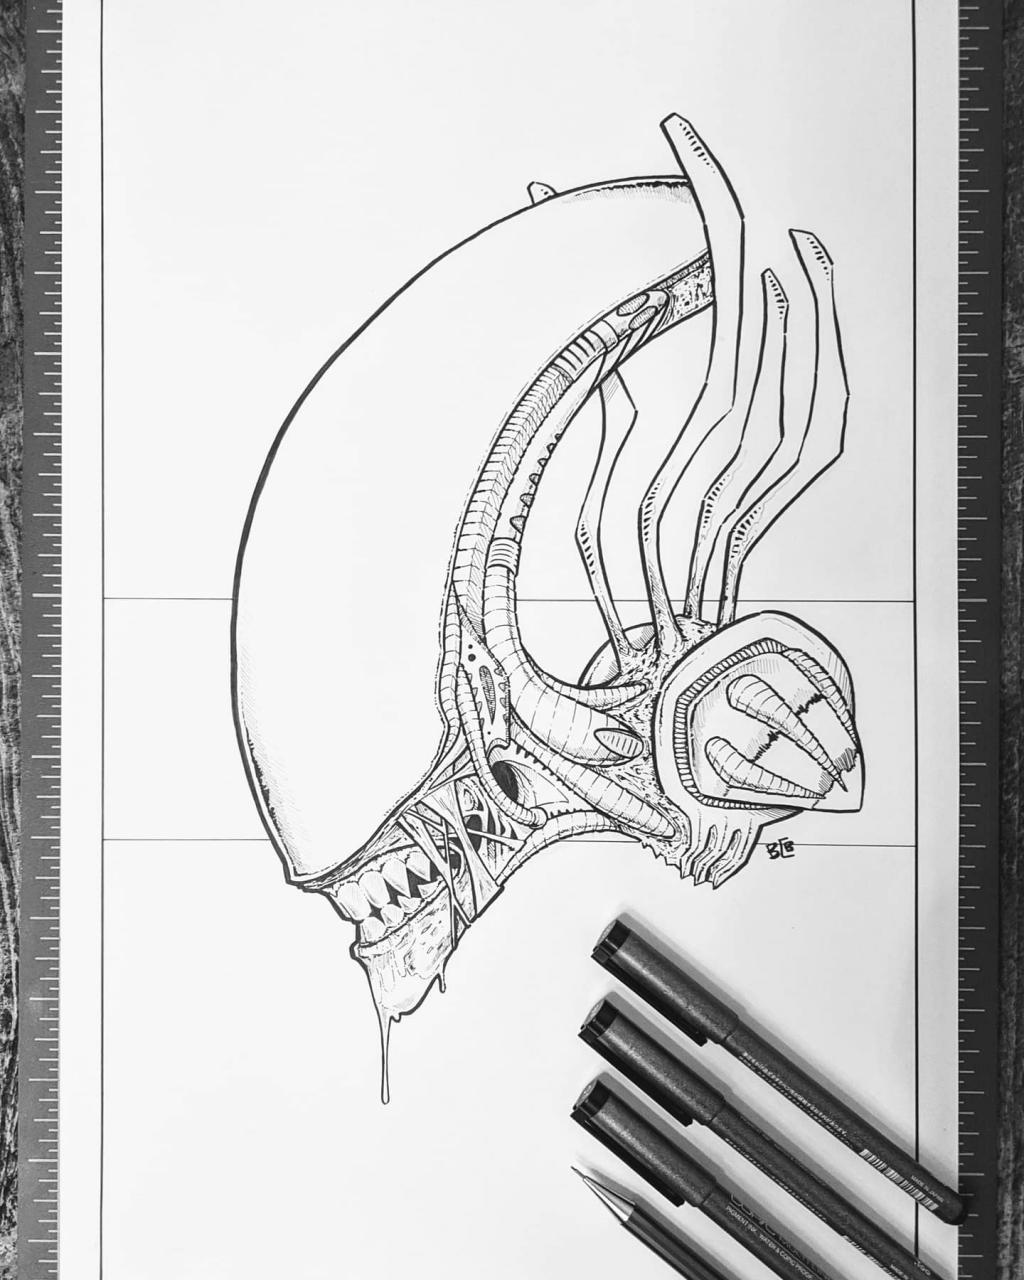 Not originally planned as a tattoo but thought I'd throw it on here anyway. Xenomorph from Alien with Copic multiliners. You can't run, so don't even try. More on IG @Mr.Grumble_Art.